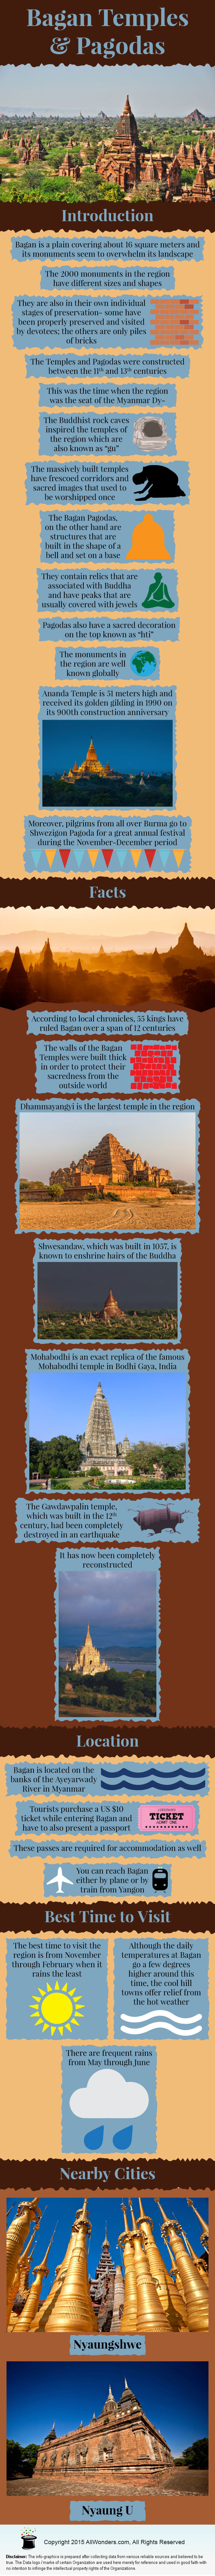 Bagan Temples and Pagodas Infographics